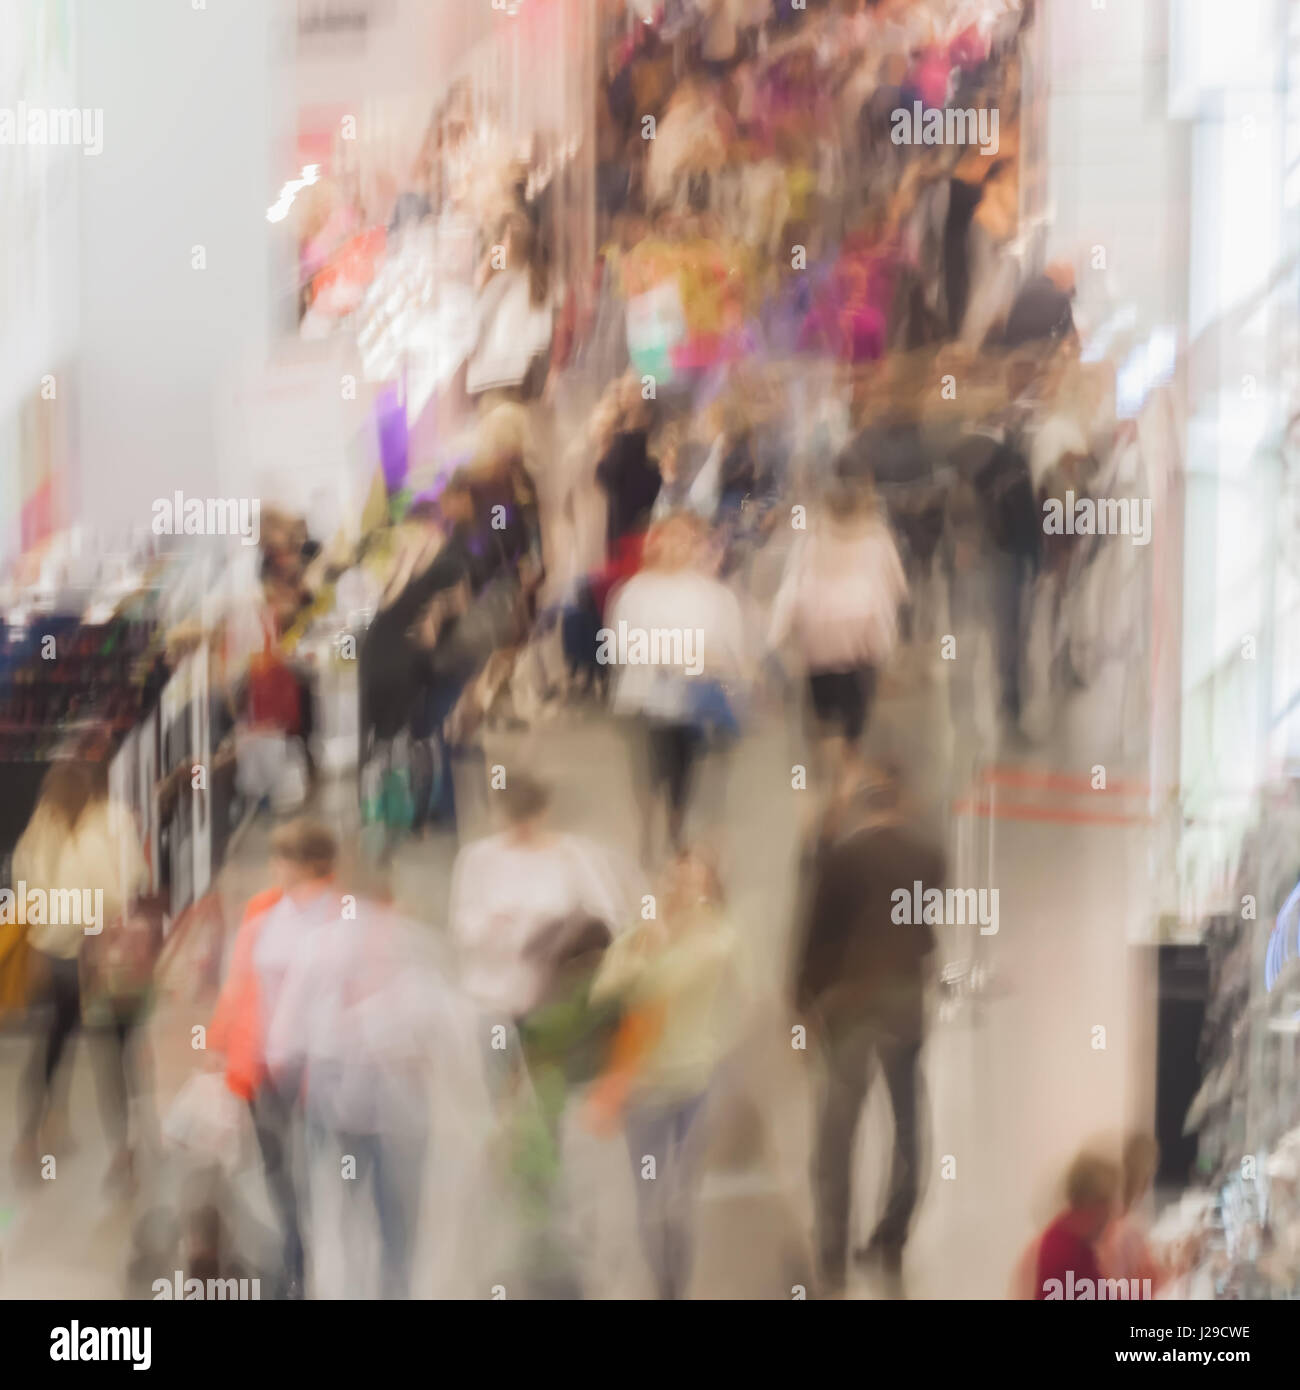 Abstract blurred image of exhibition show market and crowd people, for background usage . - Stock Image